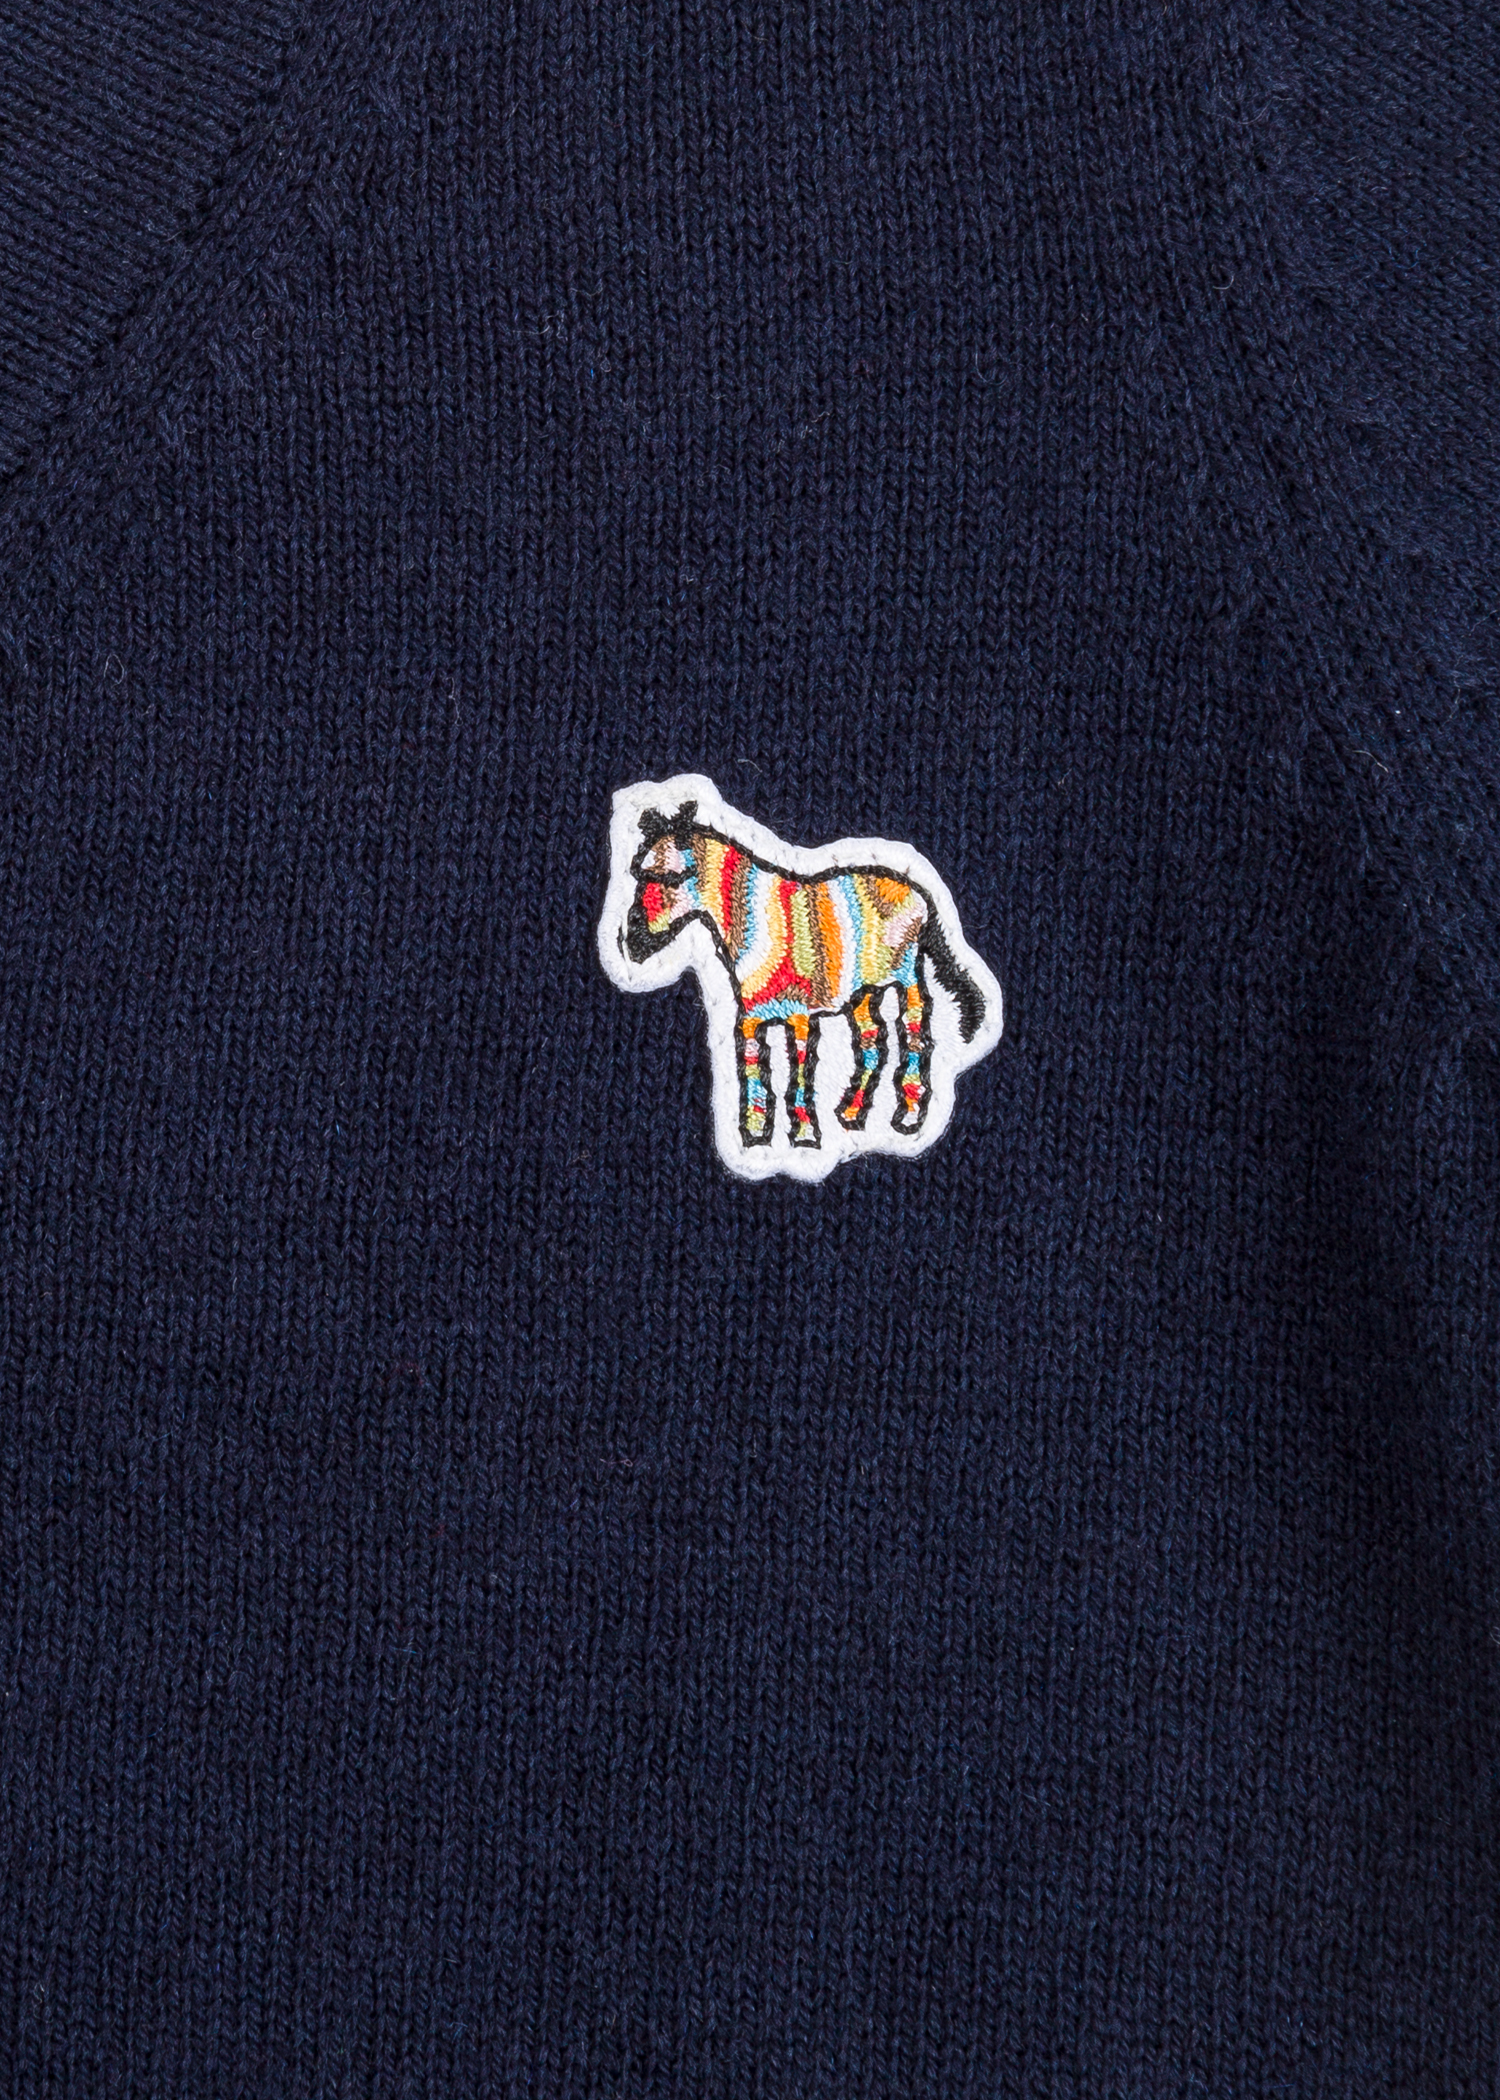 c7cd3c484289 Detailed View - Baby Boys  Navy  Zebra  Logo Cotton-Cashmere Cardigan Paul